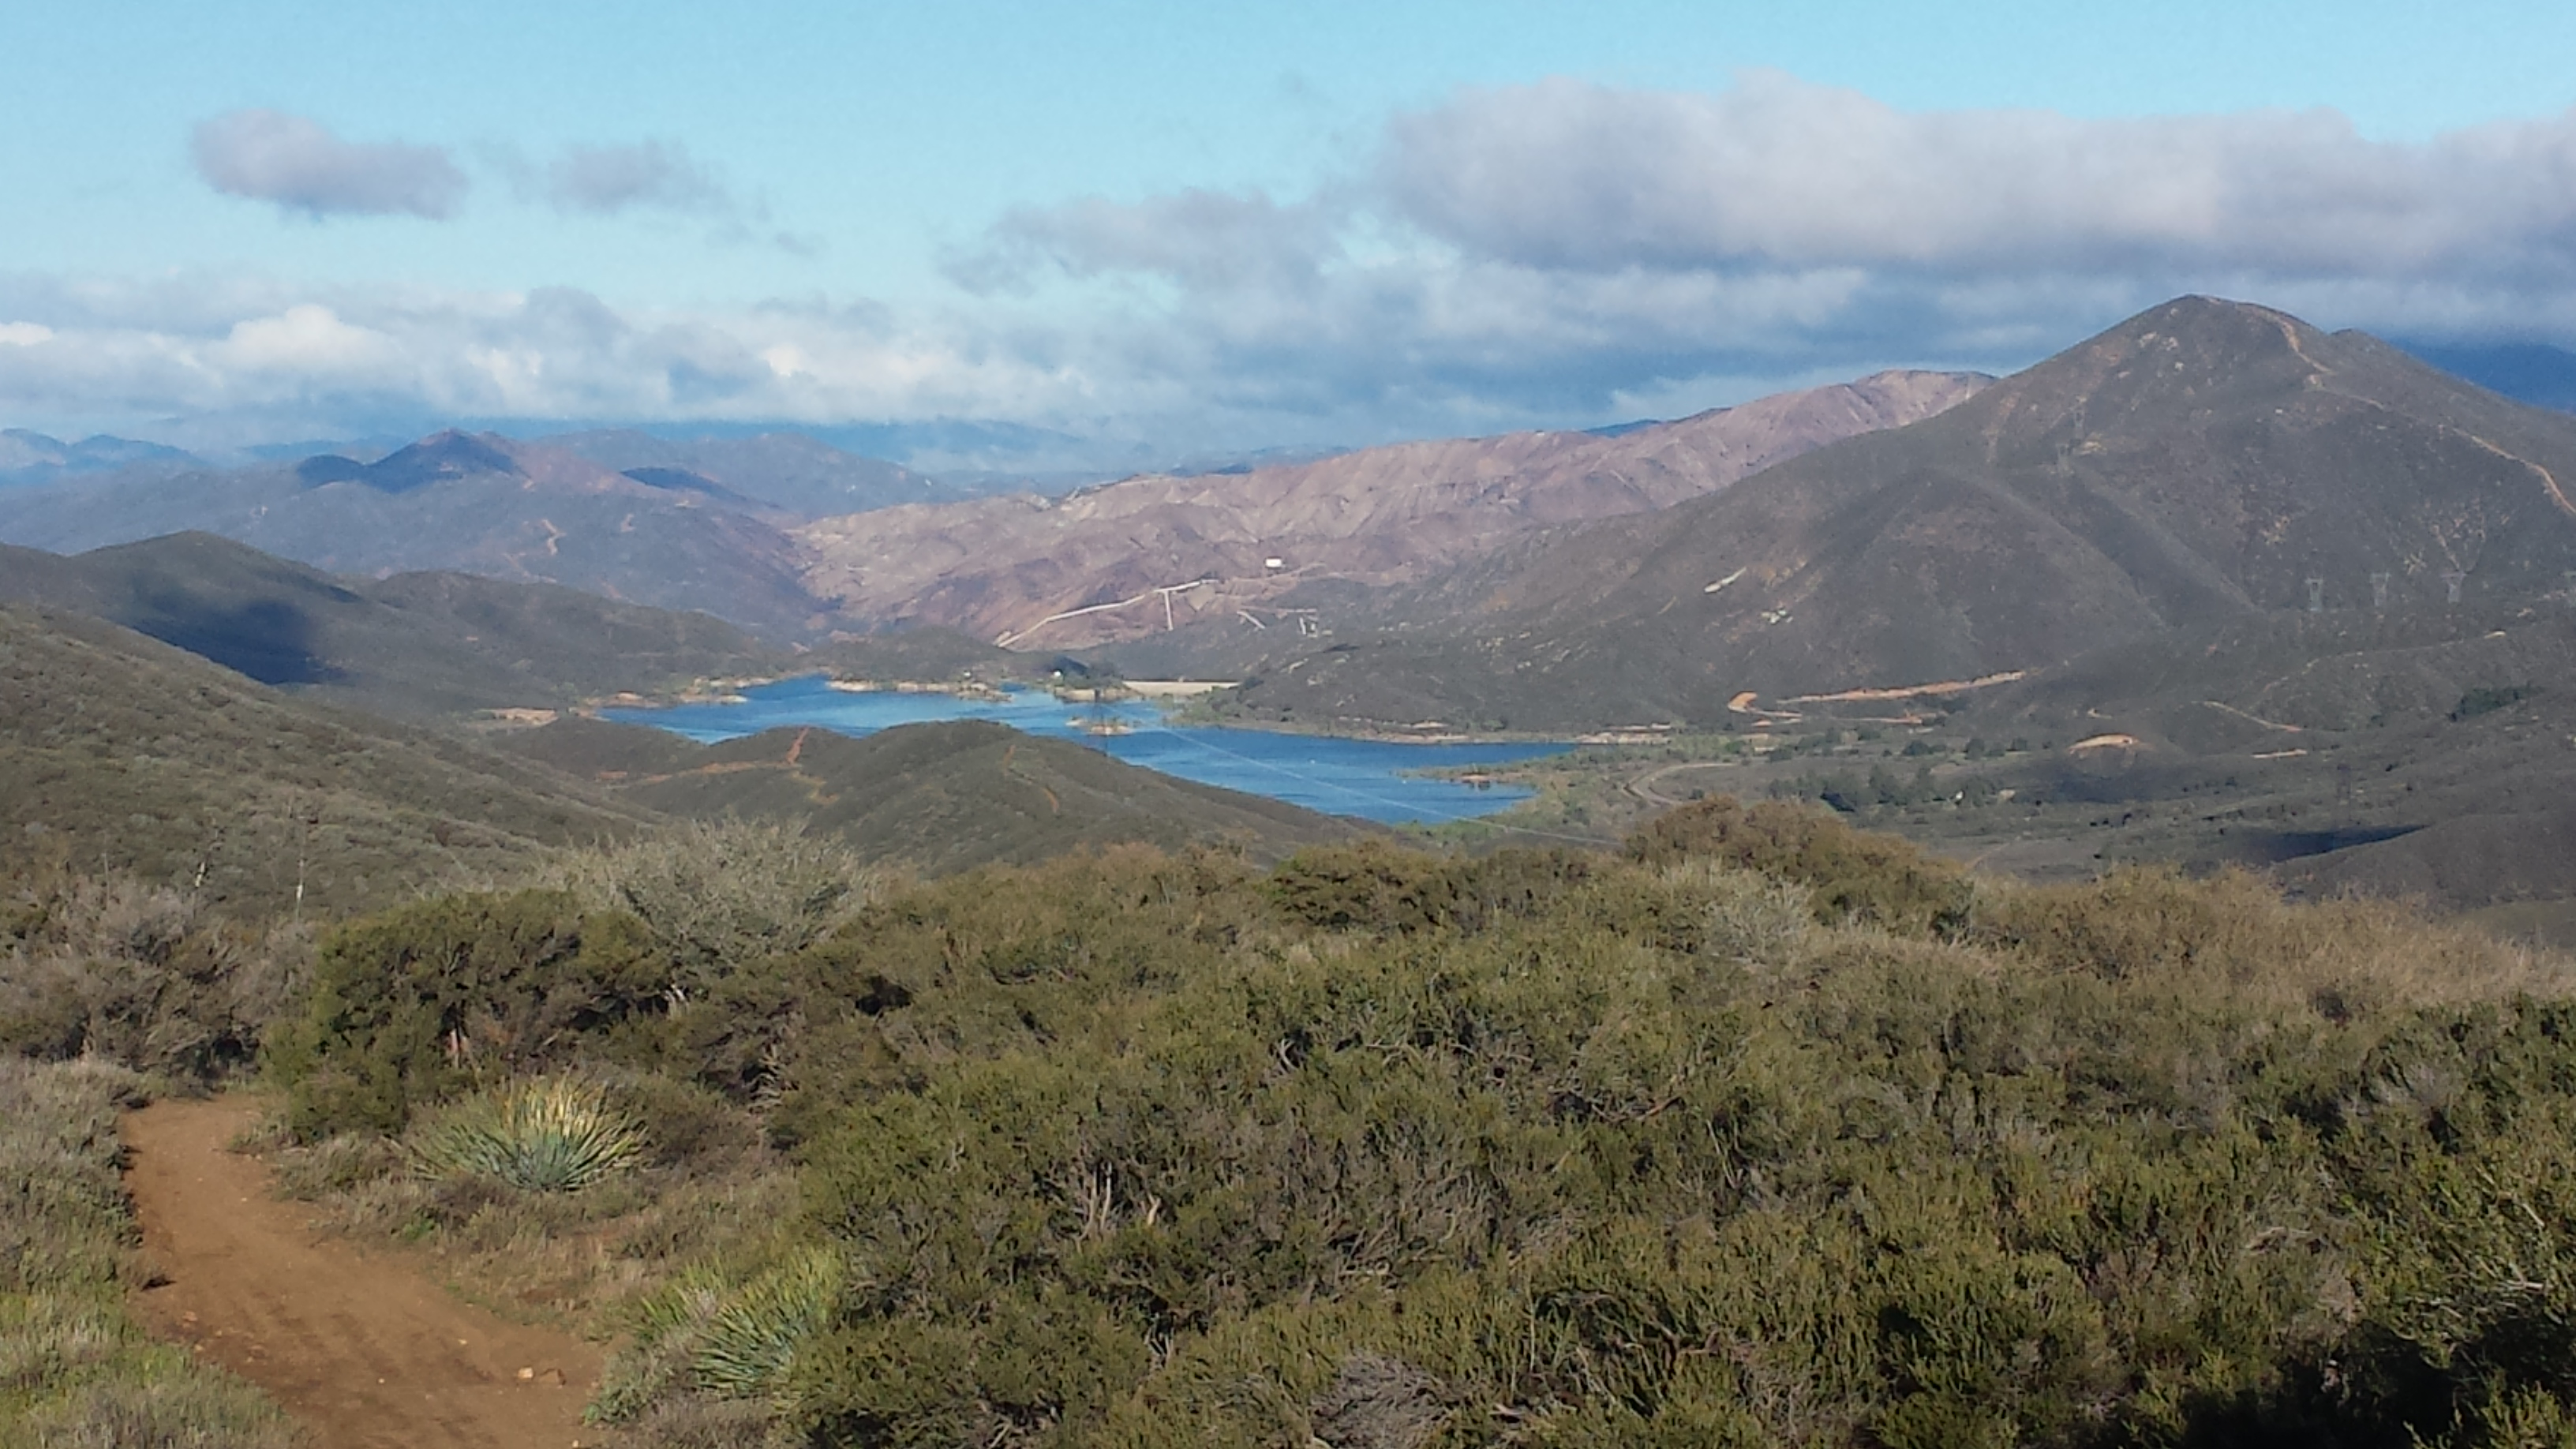 Looking toward Bouquet Canyon Reservoir and the burned/closed area